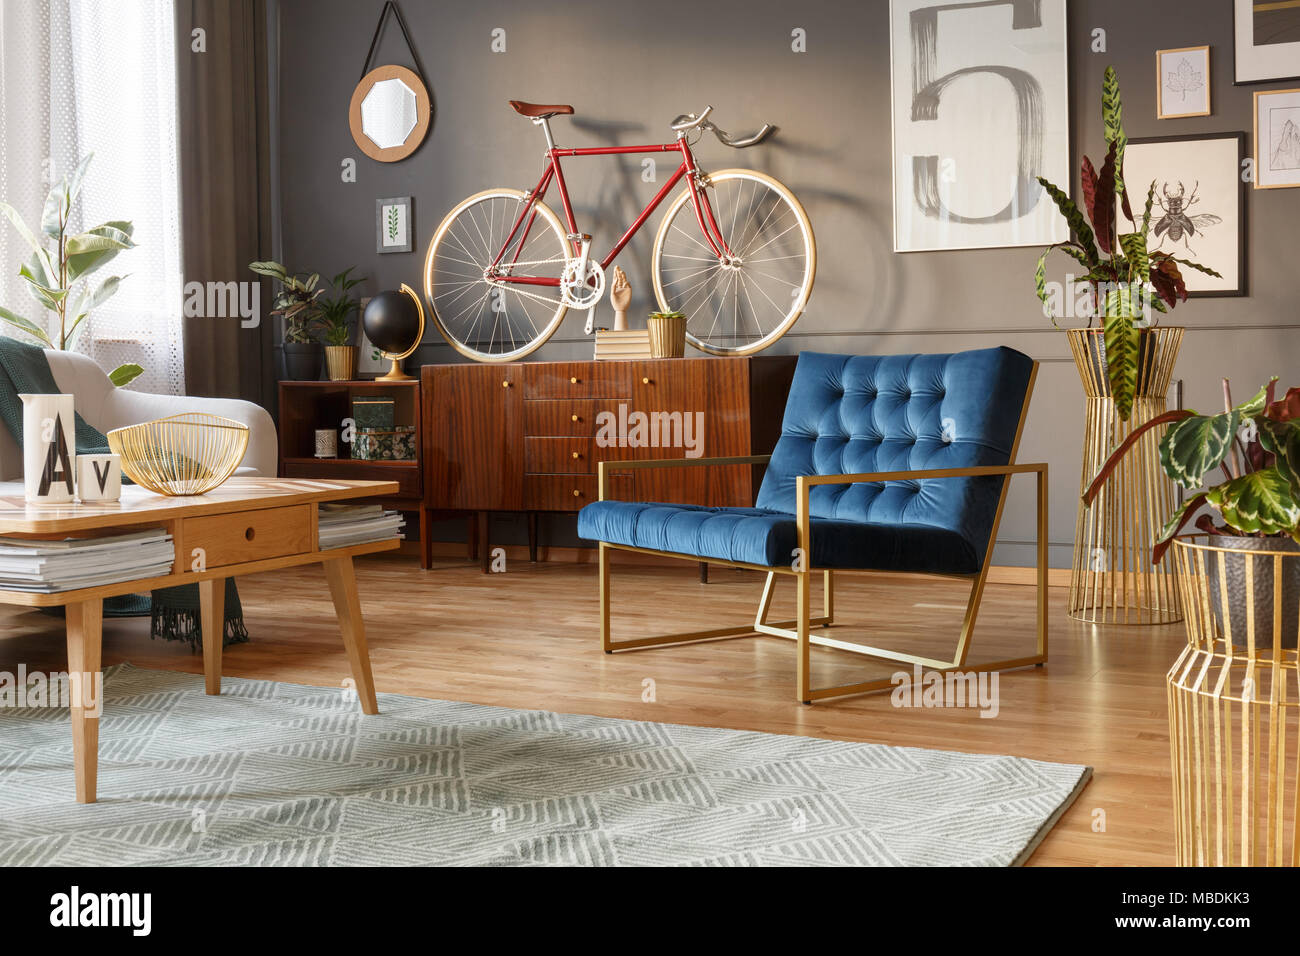 Blue And Golden Armchair Wooden Table Retro Cabinet With A Bike On Top In